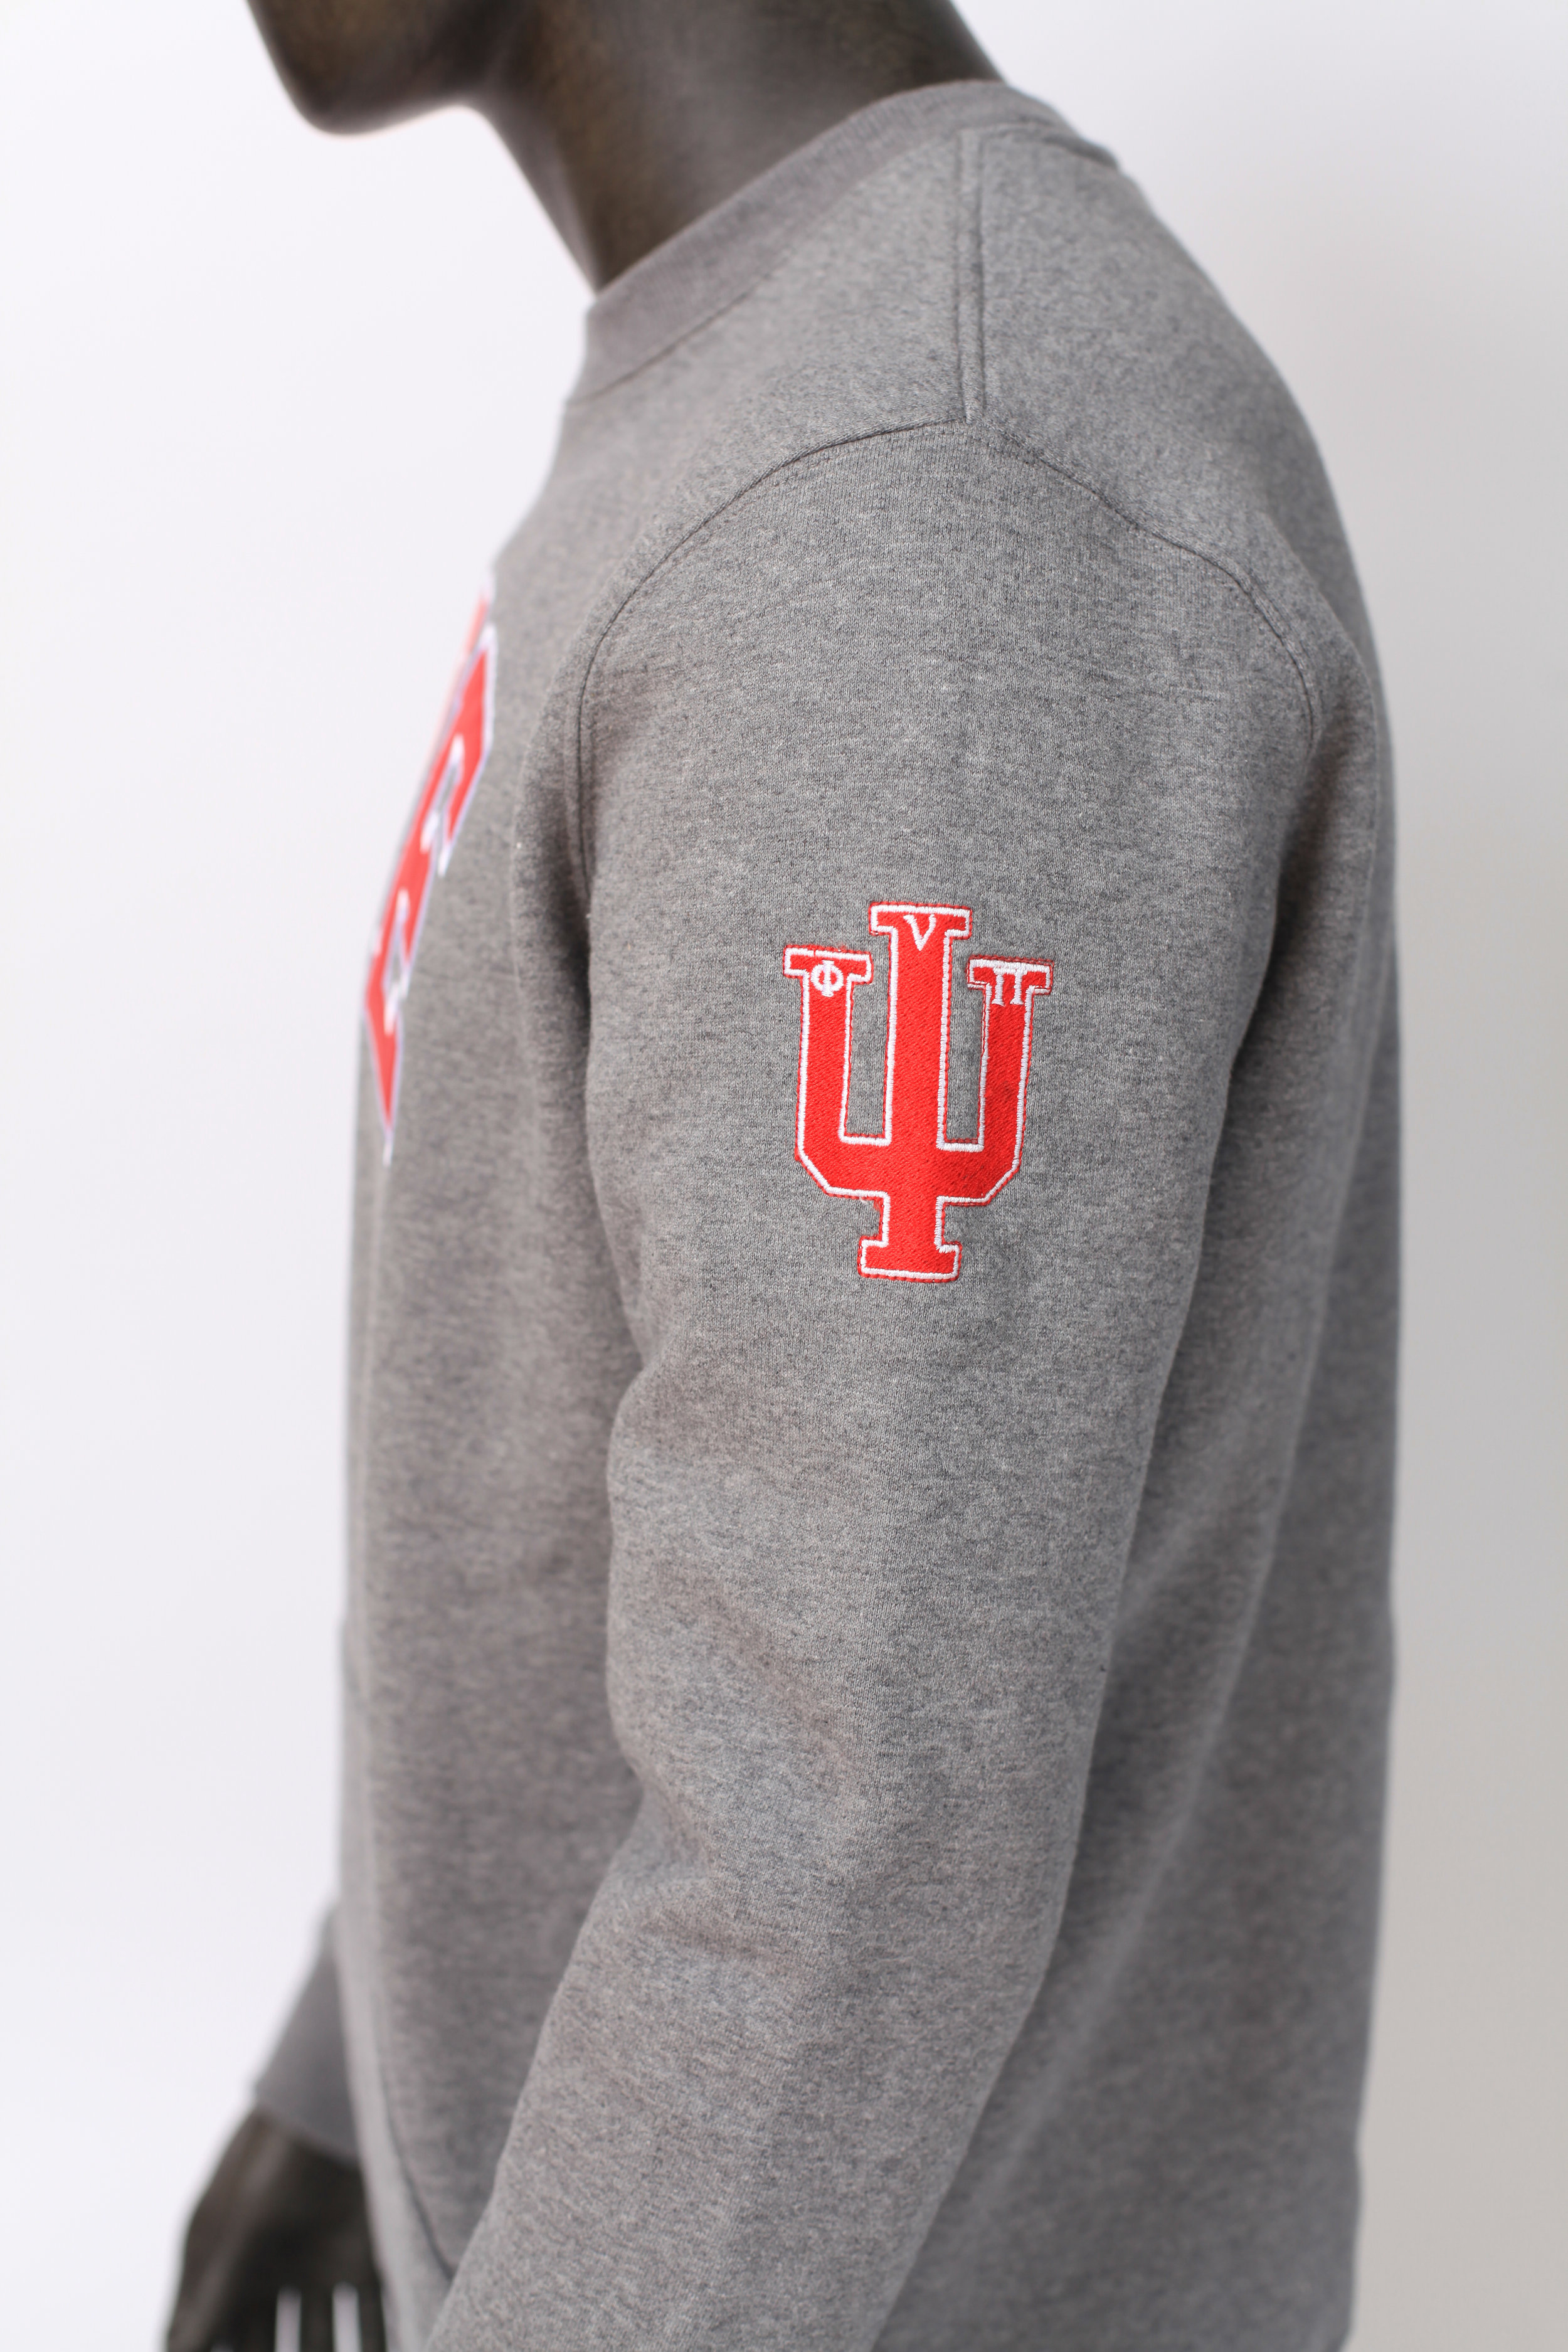 Sleeve of gray sweatshirt